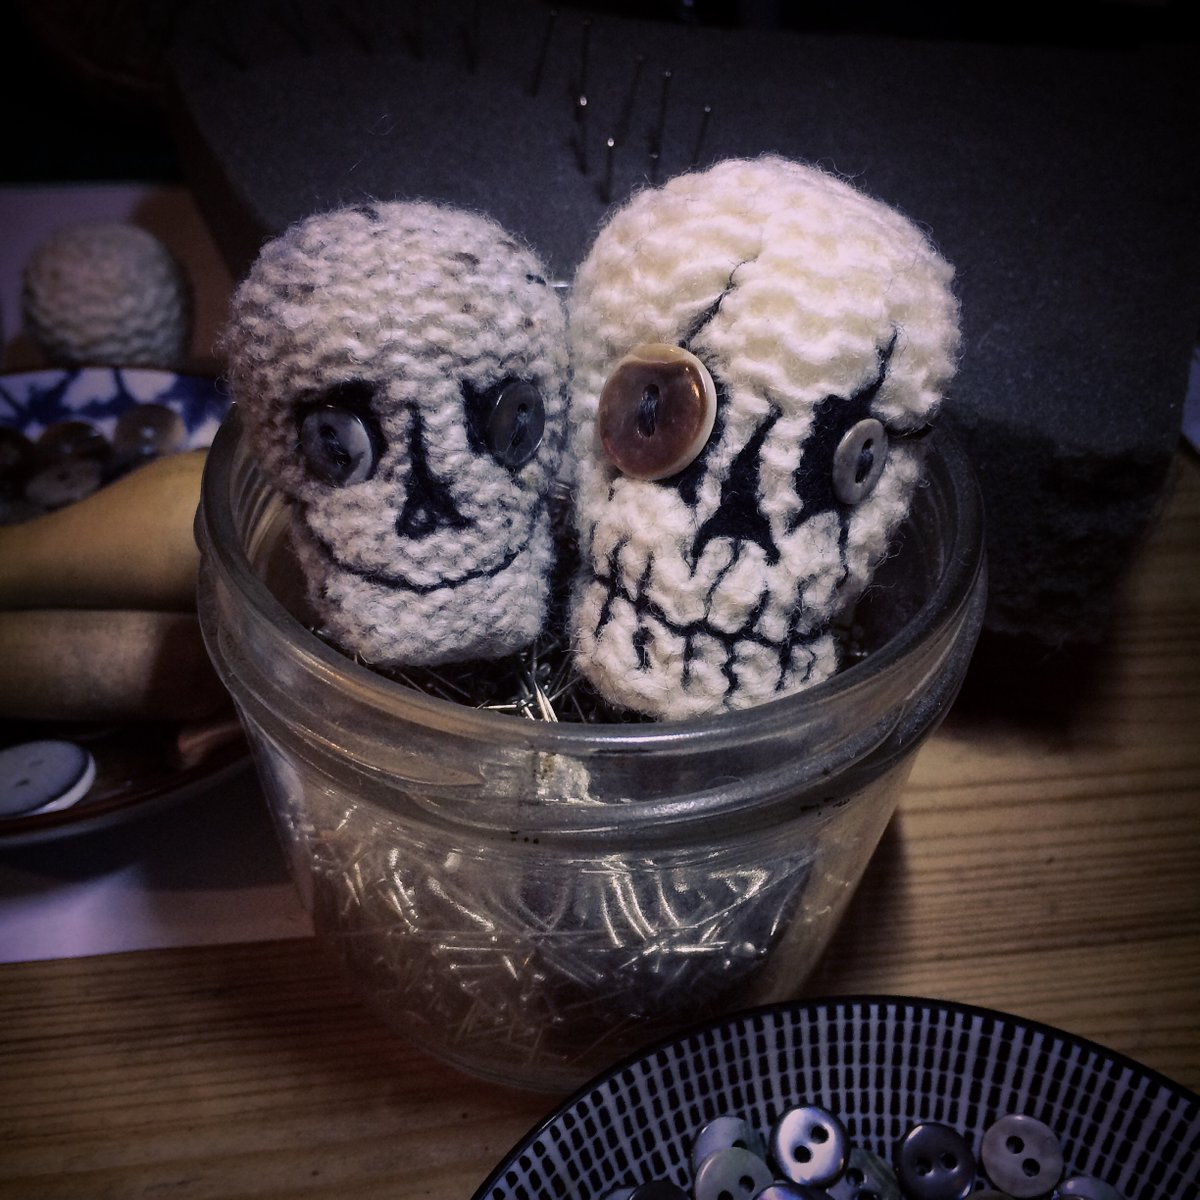 #art #work #accessories #craft #collectibles #creepy #skull #goth #knitting #handcrafted #alternative #giftideas #macabre #keychain #dark #ornament #collection #ooak #knitted  #occult #needlefelting #sewing #lowbrowart #ooakskull #buttonsforeyes #voiseycreatures #handmademacabrepic.twitter.com/3v3T1nKCzK